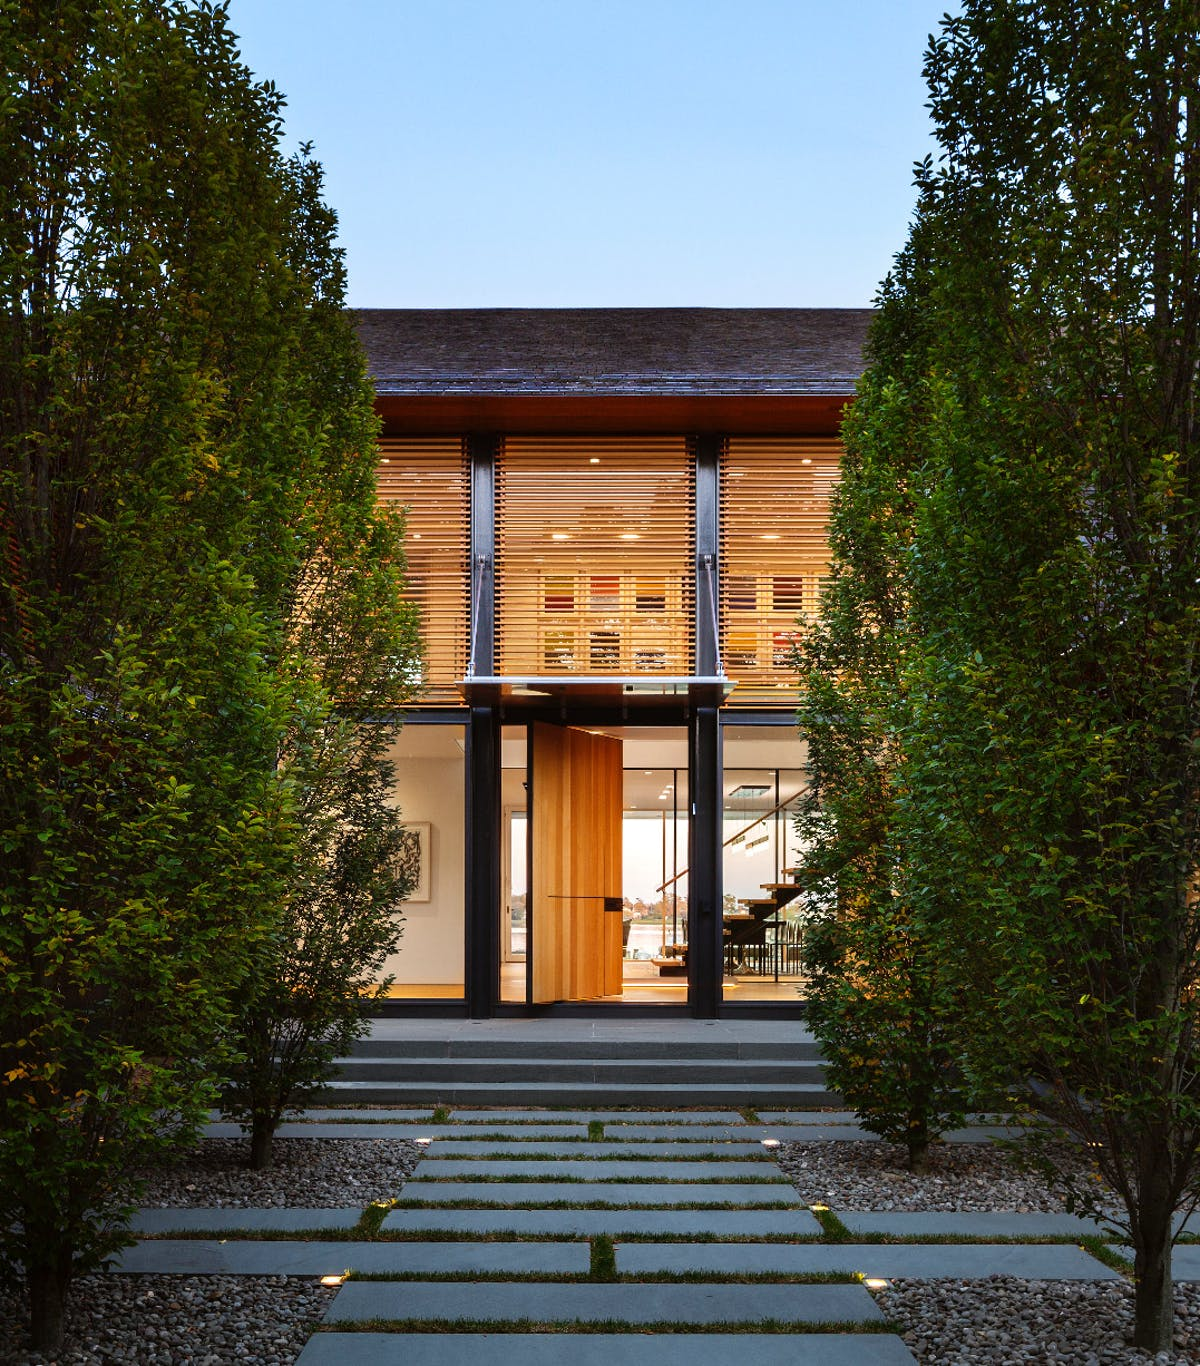 Harbor residence joeb moore partners archinect - Stonington residence by joeb moore partners ...